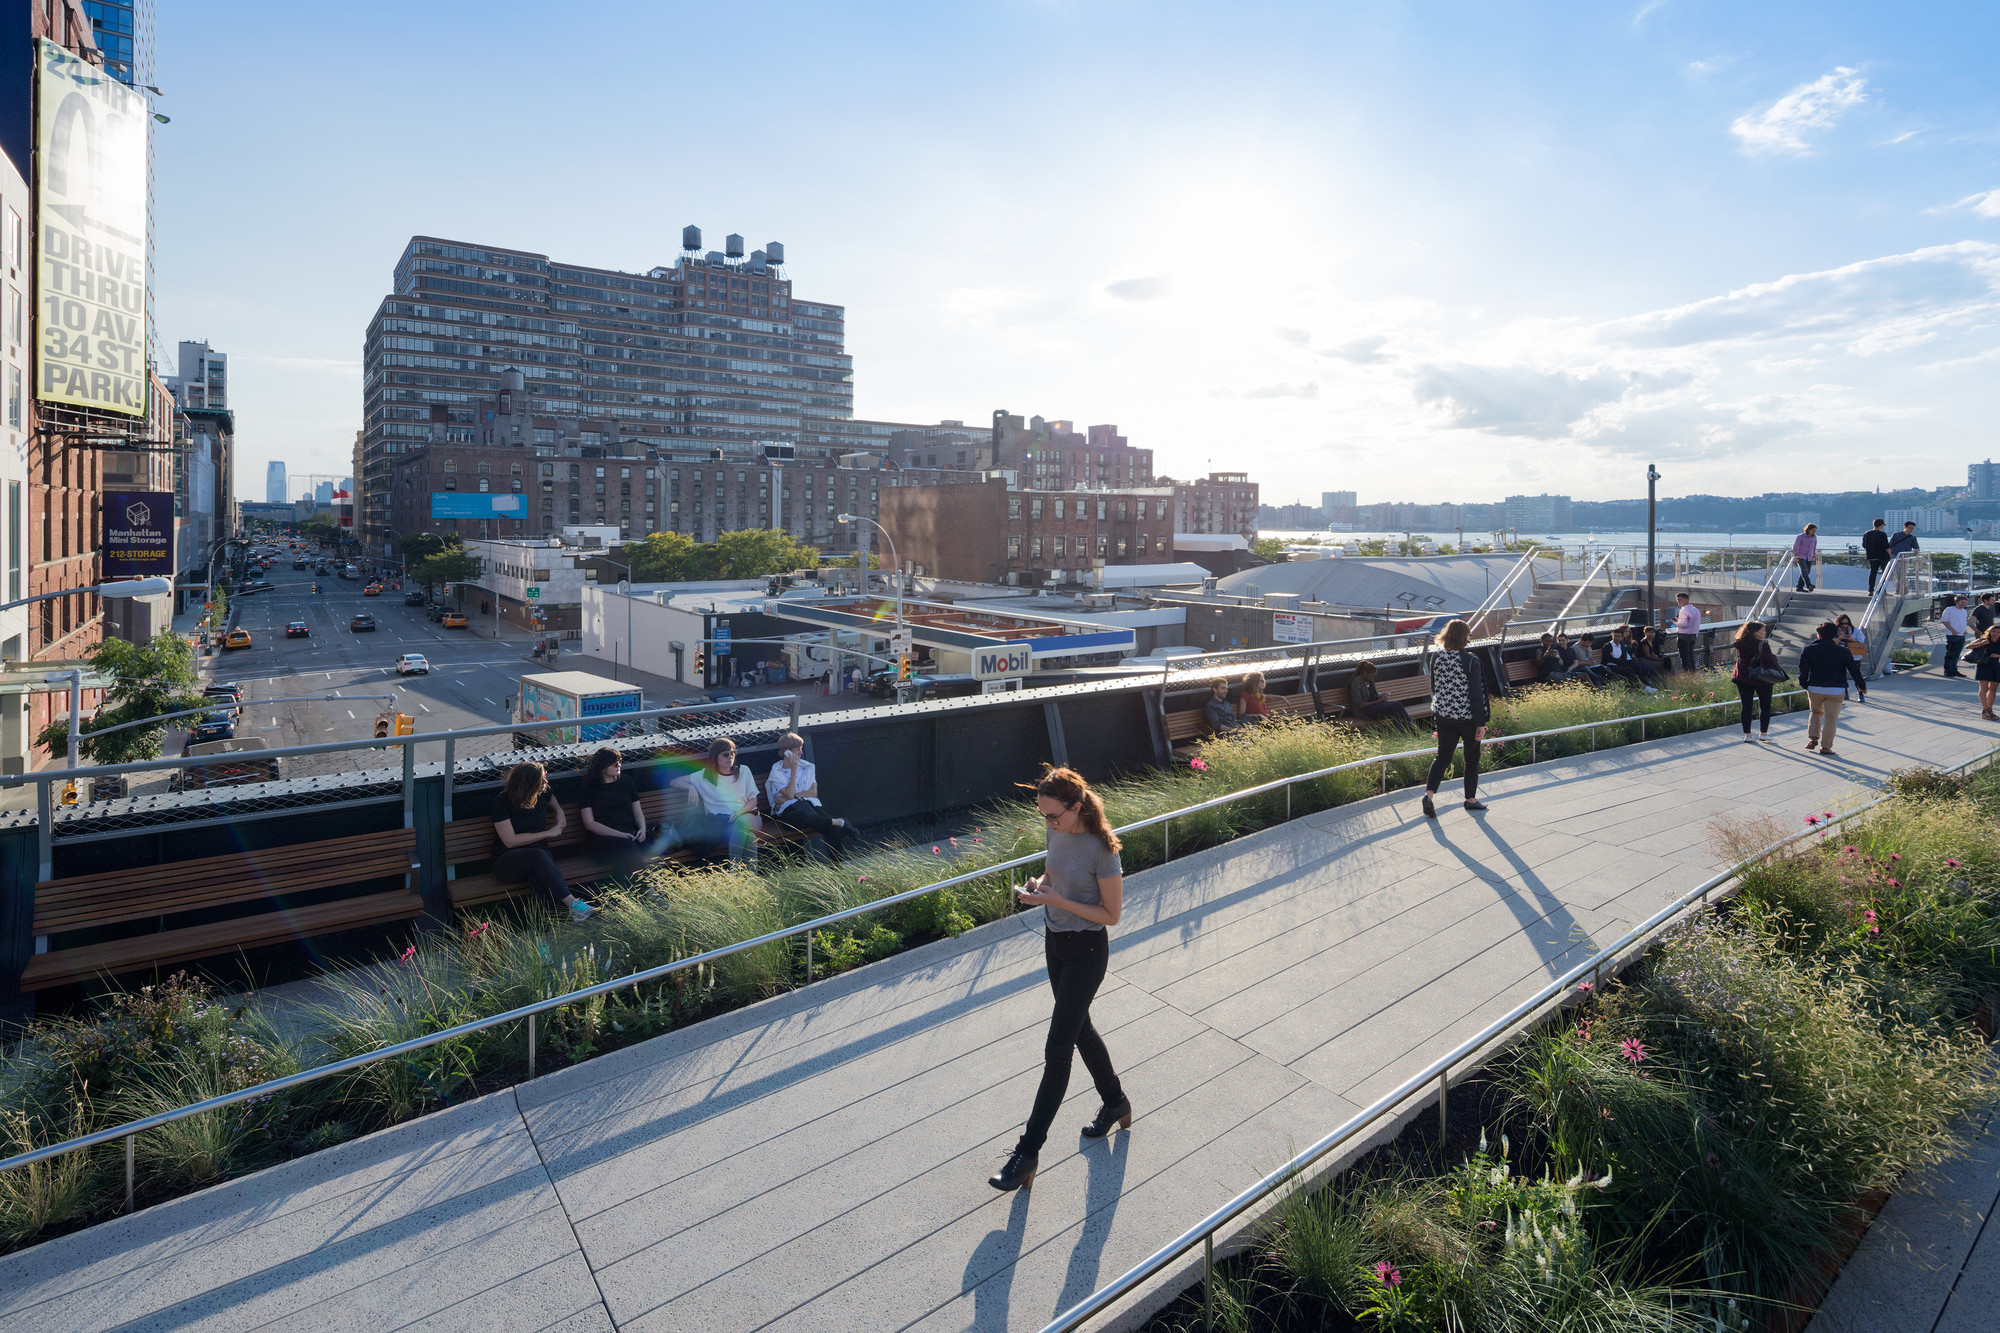 Gallery Of Take A Walk On The High Line With Iwan Baan 3